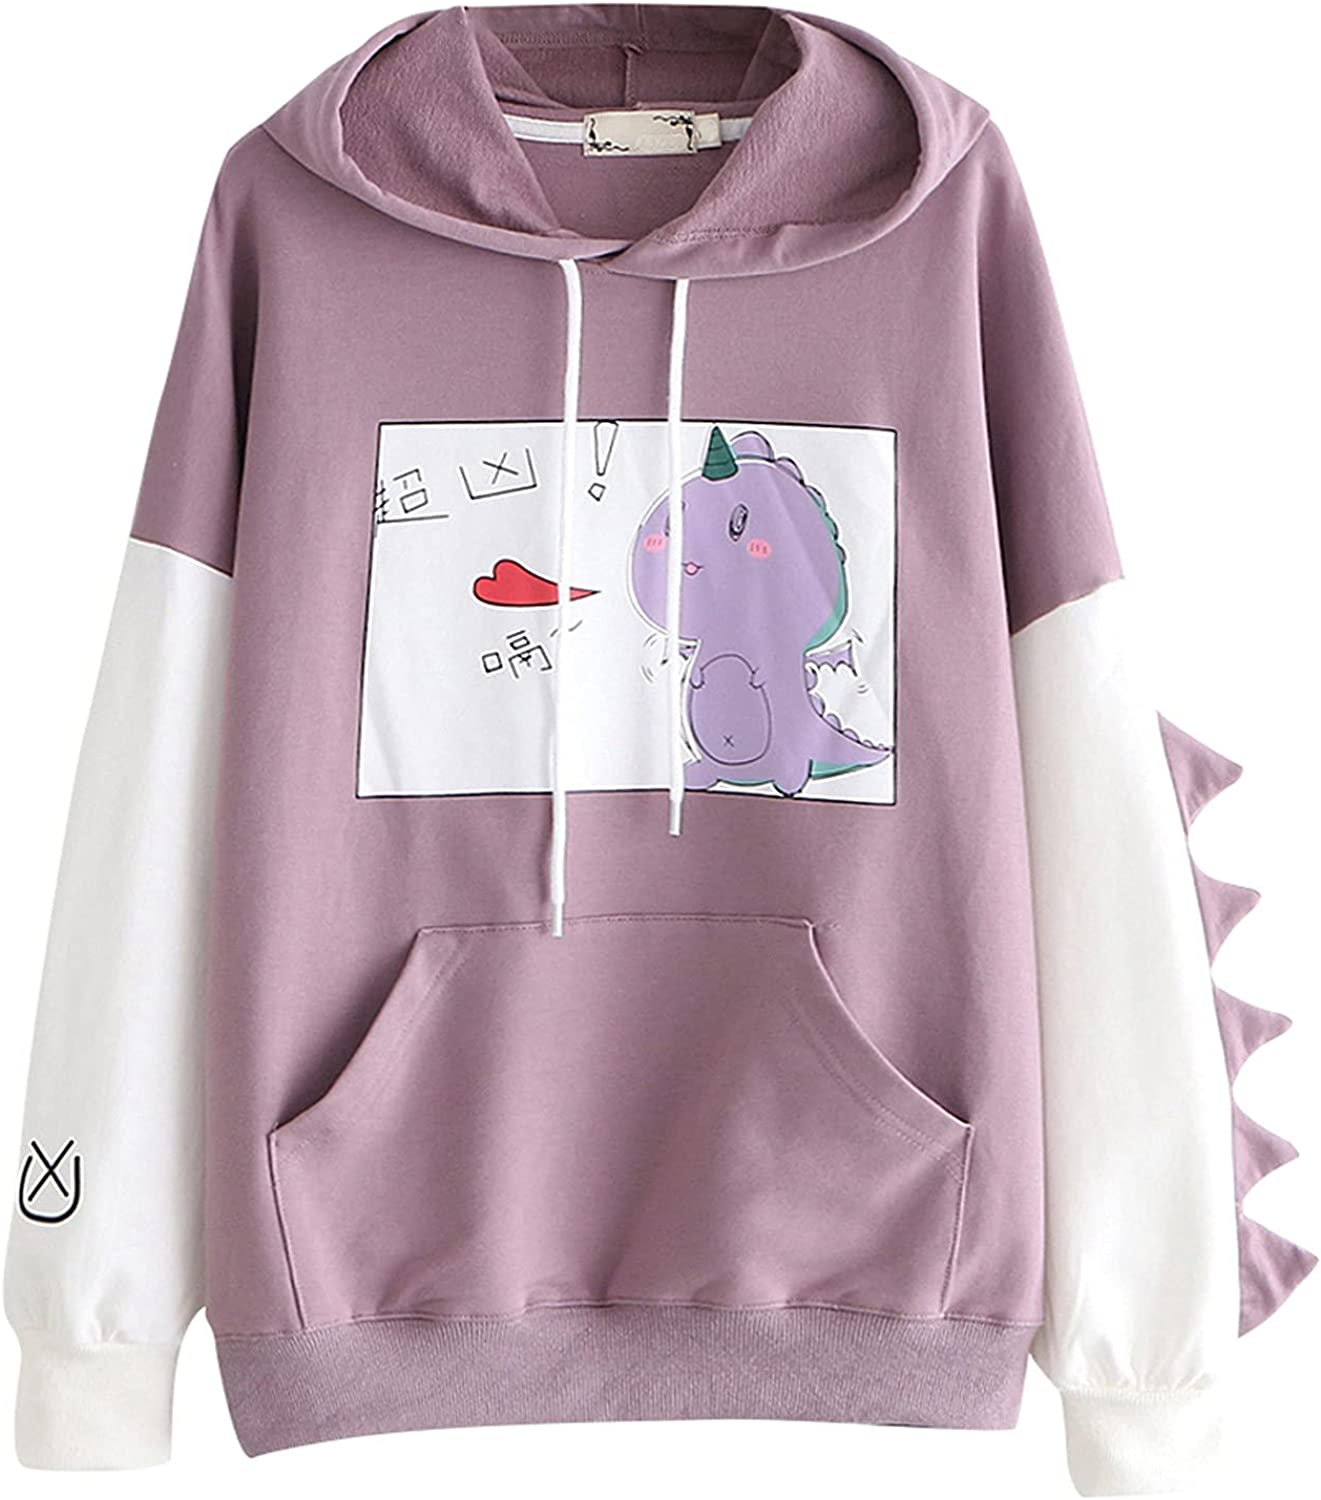 Cute Hoodies for Women with Pockets Print Max 72% OFF Dinosaur Tampa Mall Funny Trendy